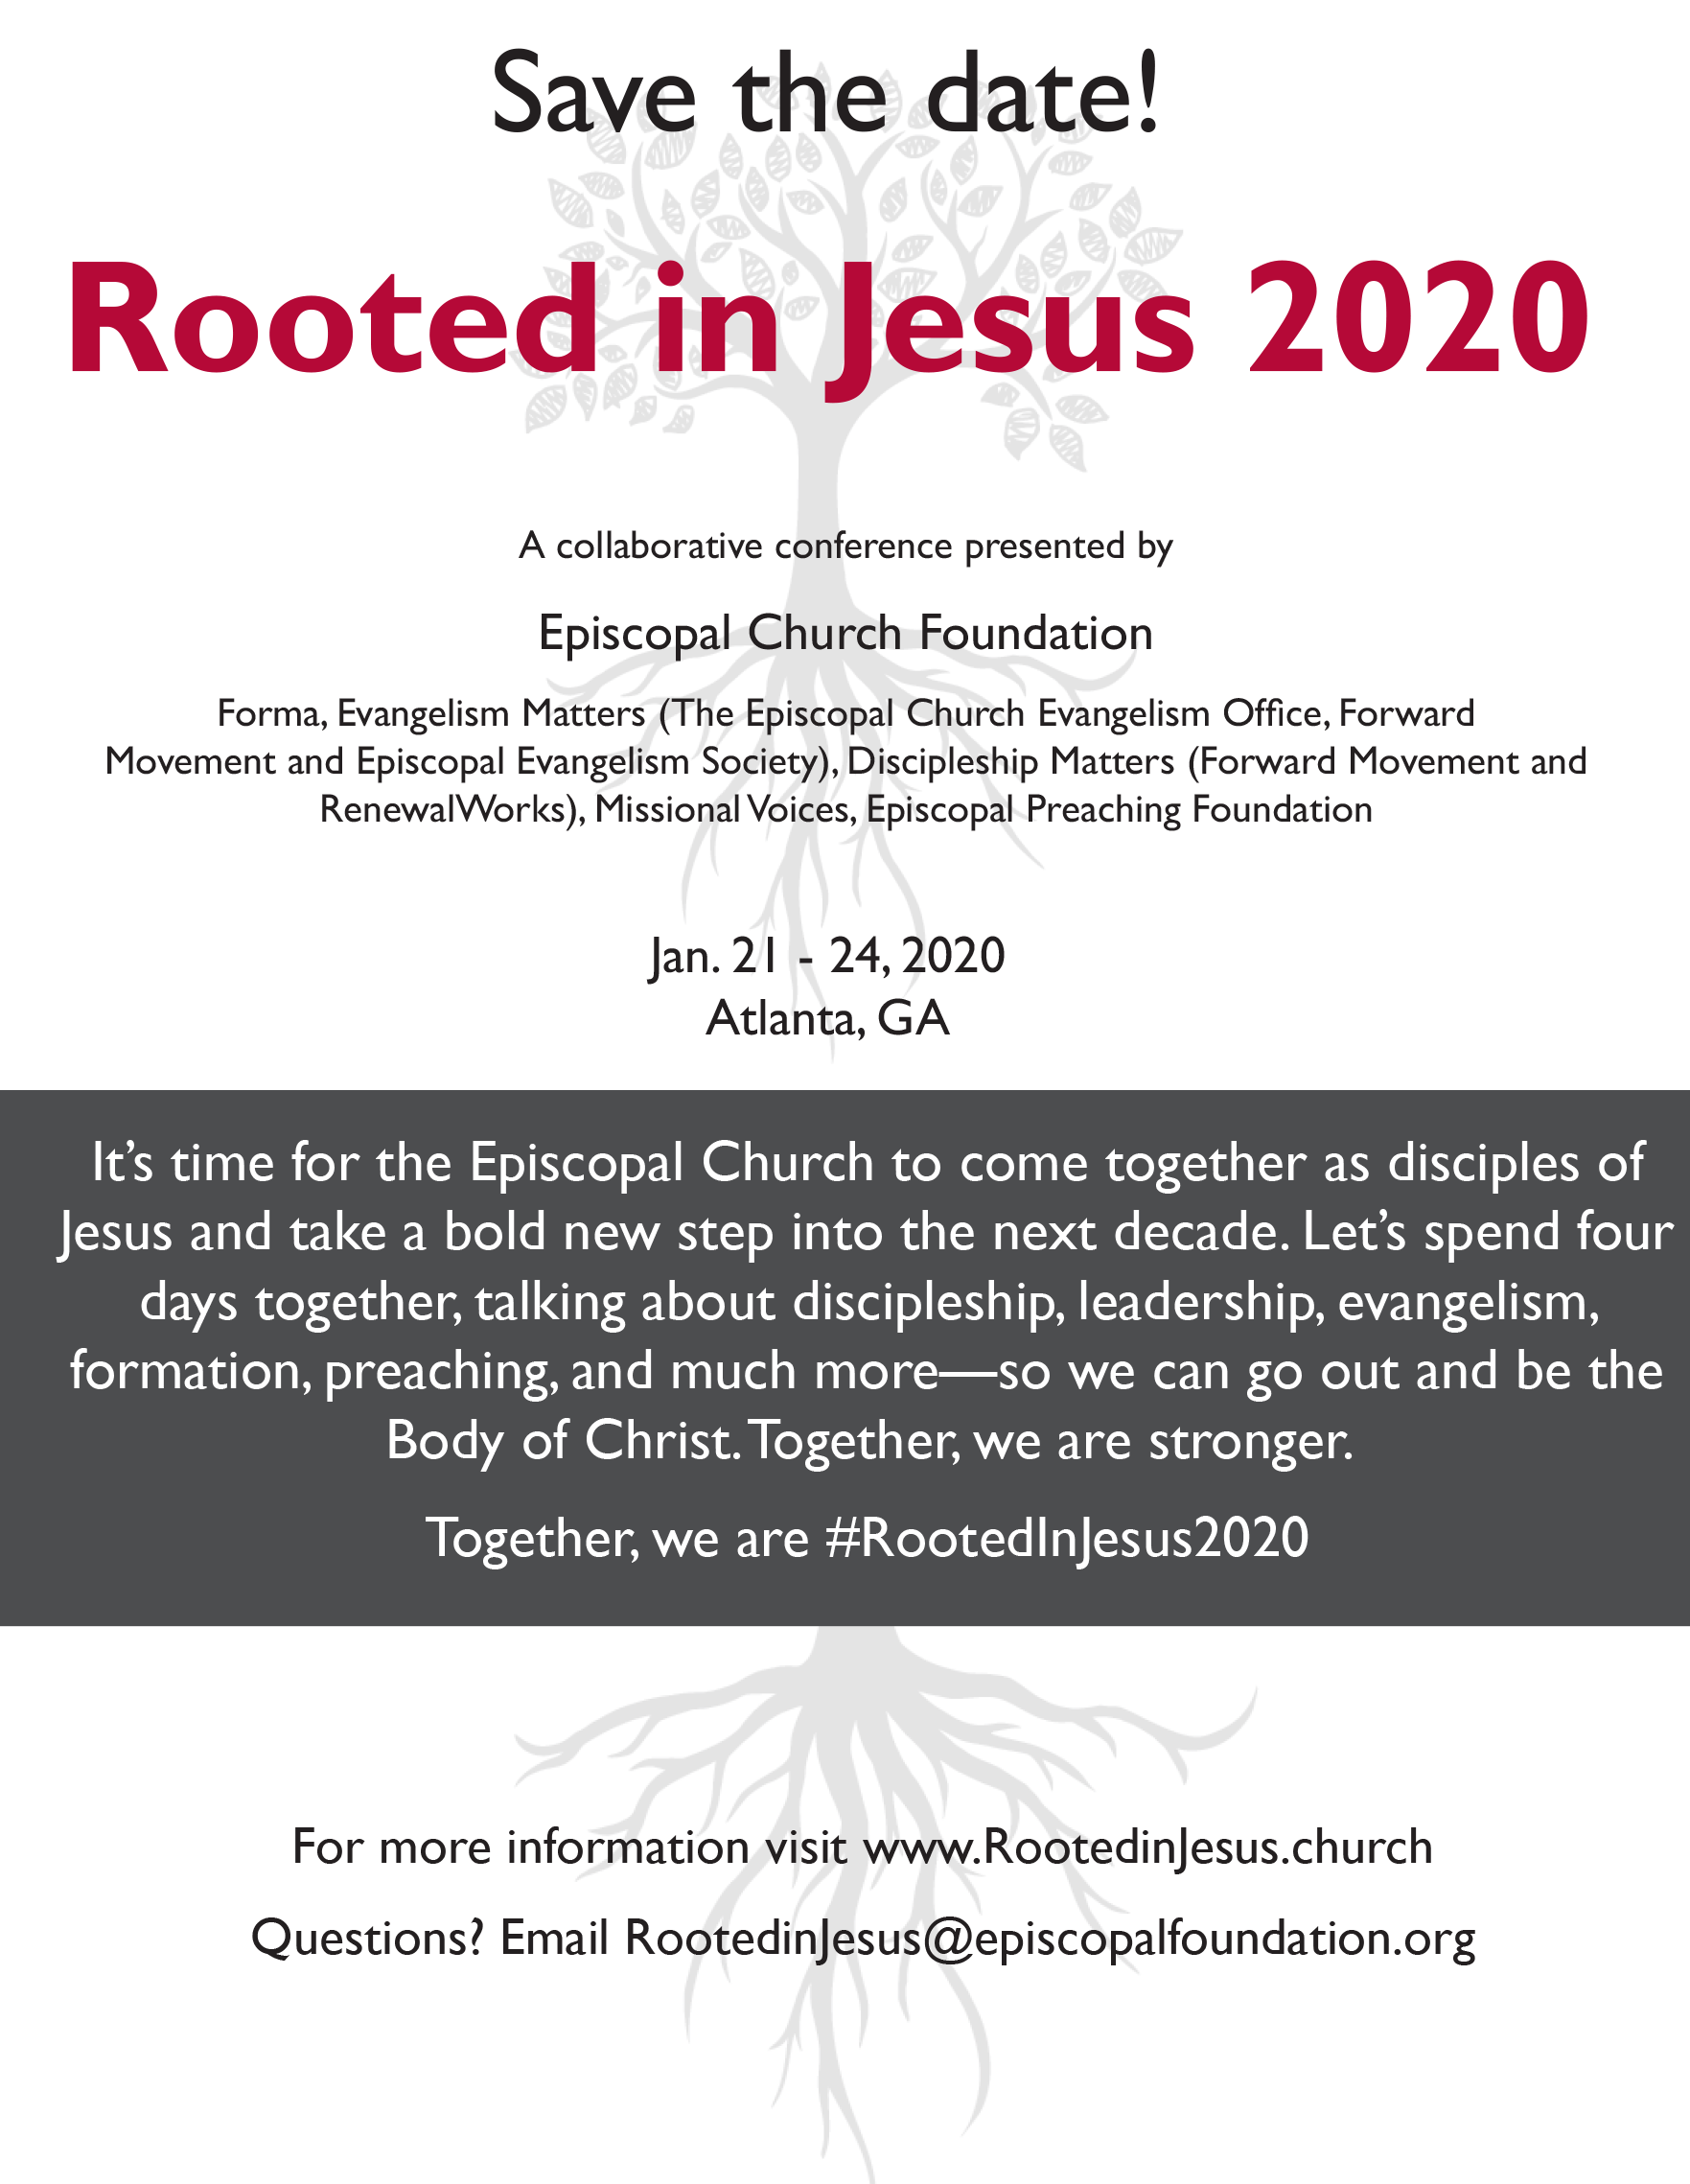 Rooted in Jesus 2020